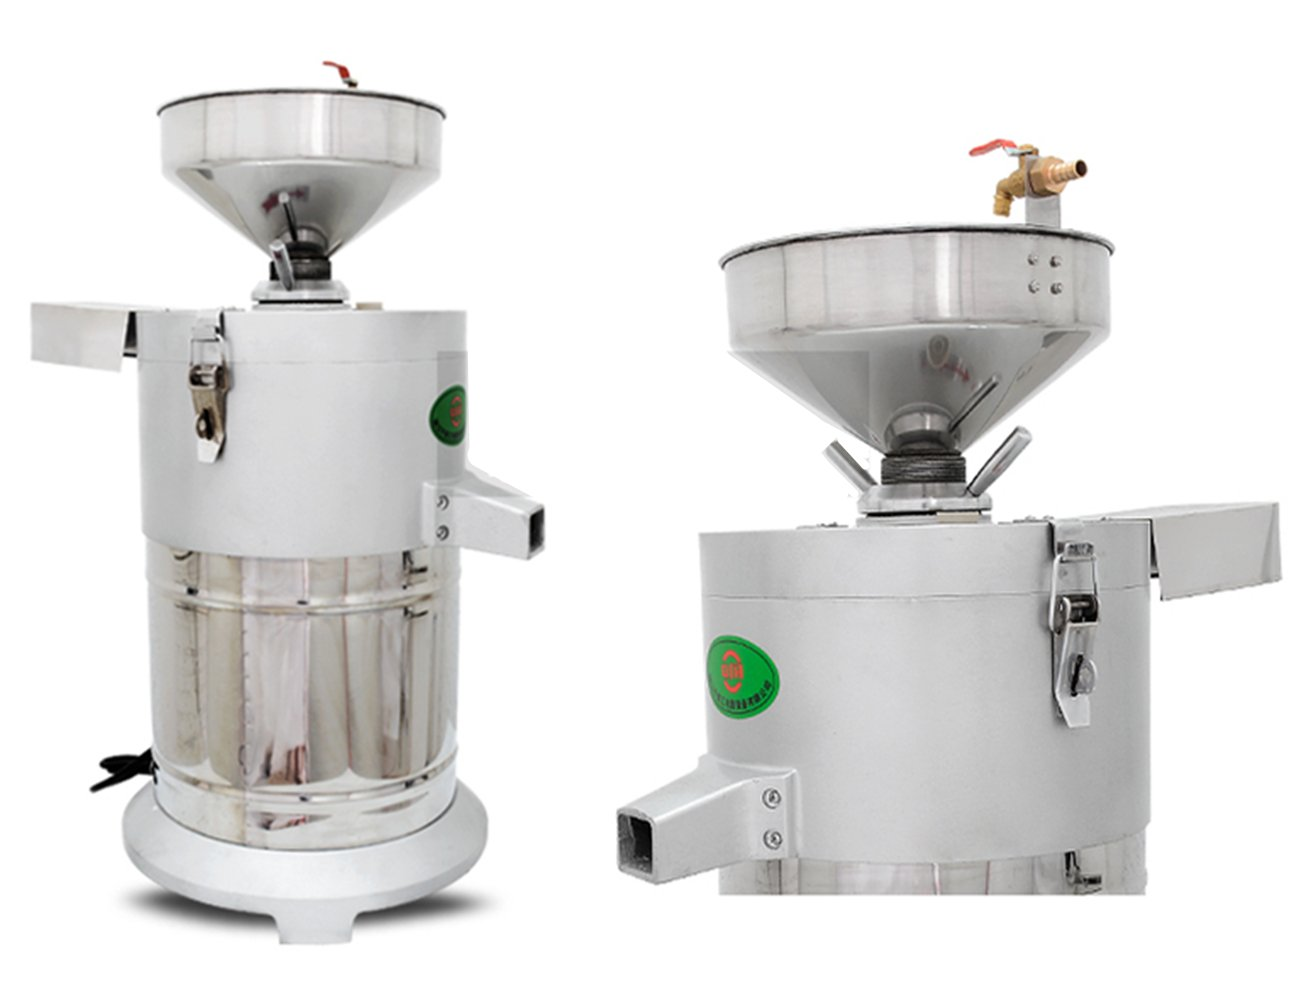 Commercial aluminum alloy Healthy Nutrition Soymilk Maker Commercial large Soymilk Maker Soybean Milk machine Electric fiberizer Automatic Soya Milk and Dregs separater Splitter 150kg/h by CGOLDENWALL (Image #2)